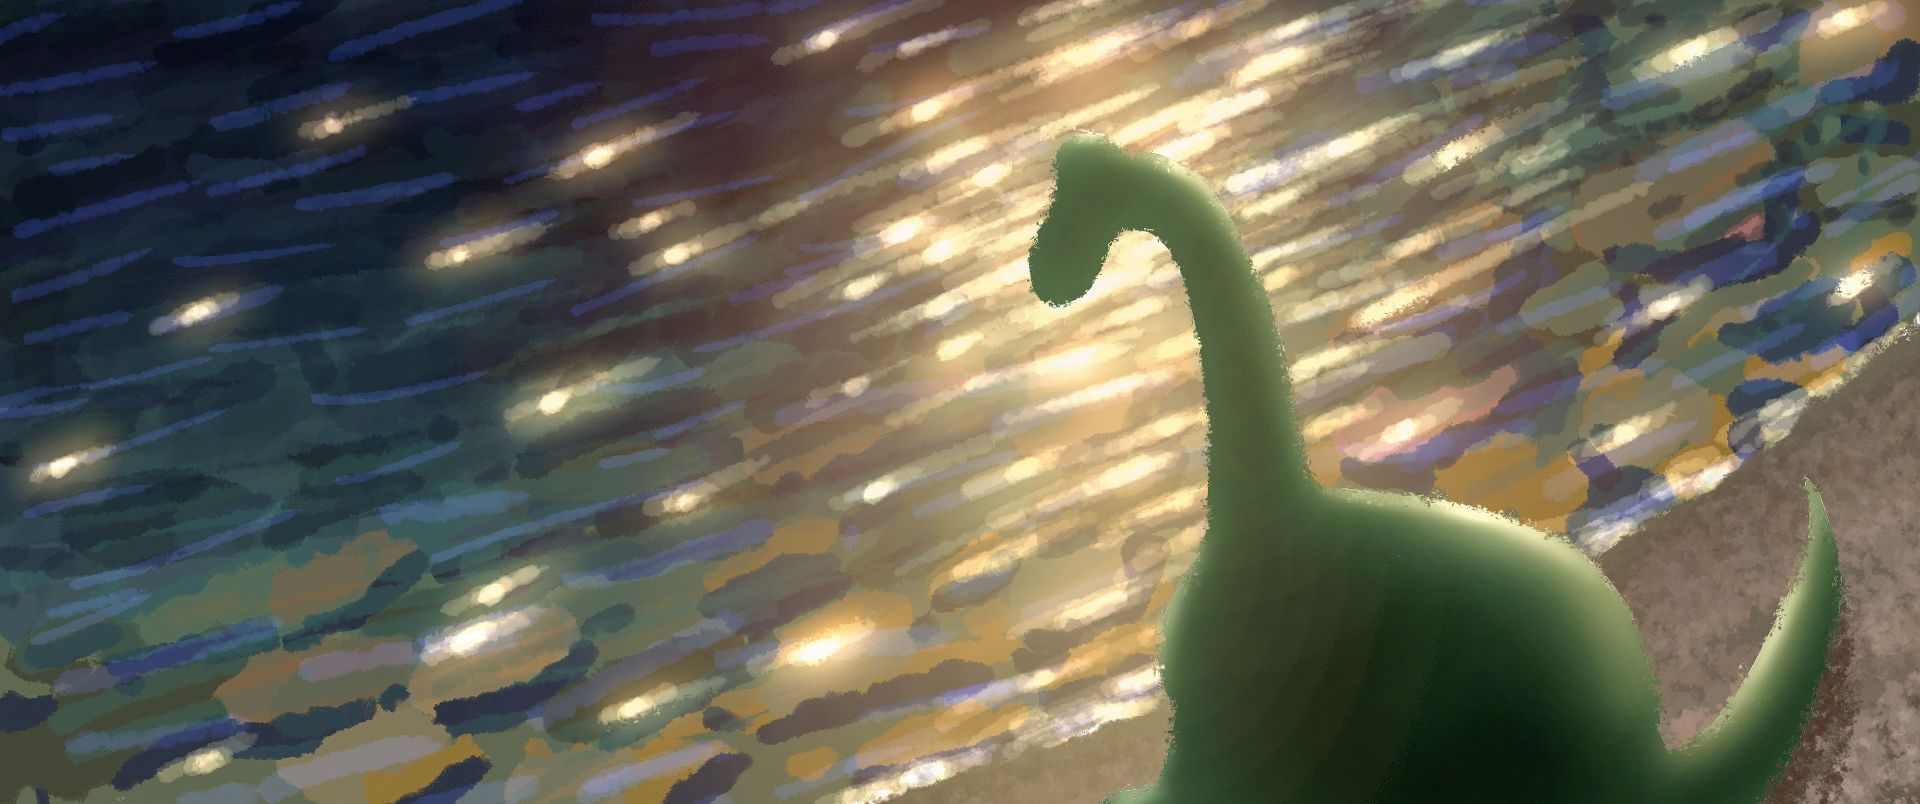 A young, lost dinosaur becomes friends with a boy in Pixar's The Good Dinosaur - get your first proper look right here